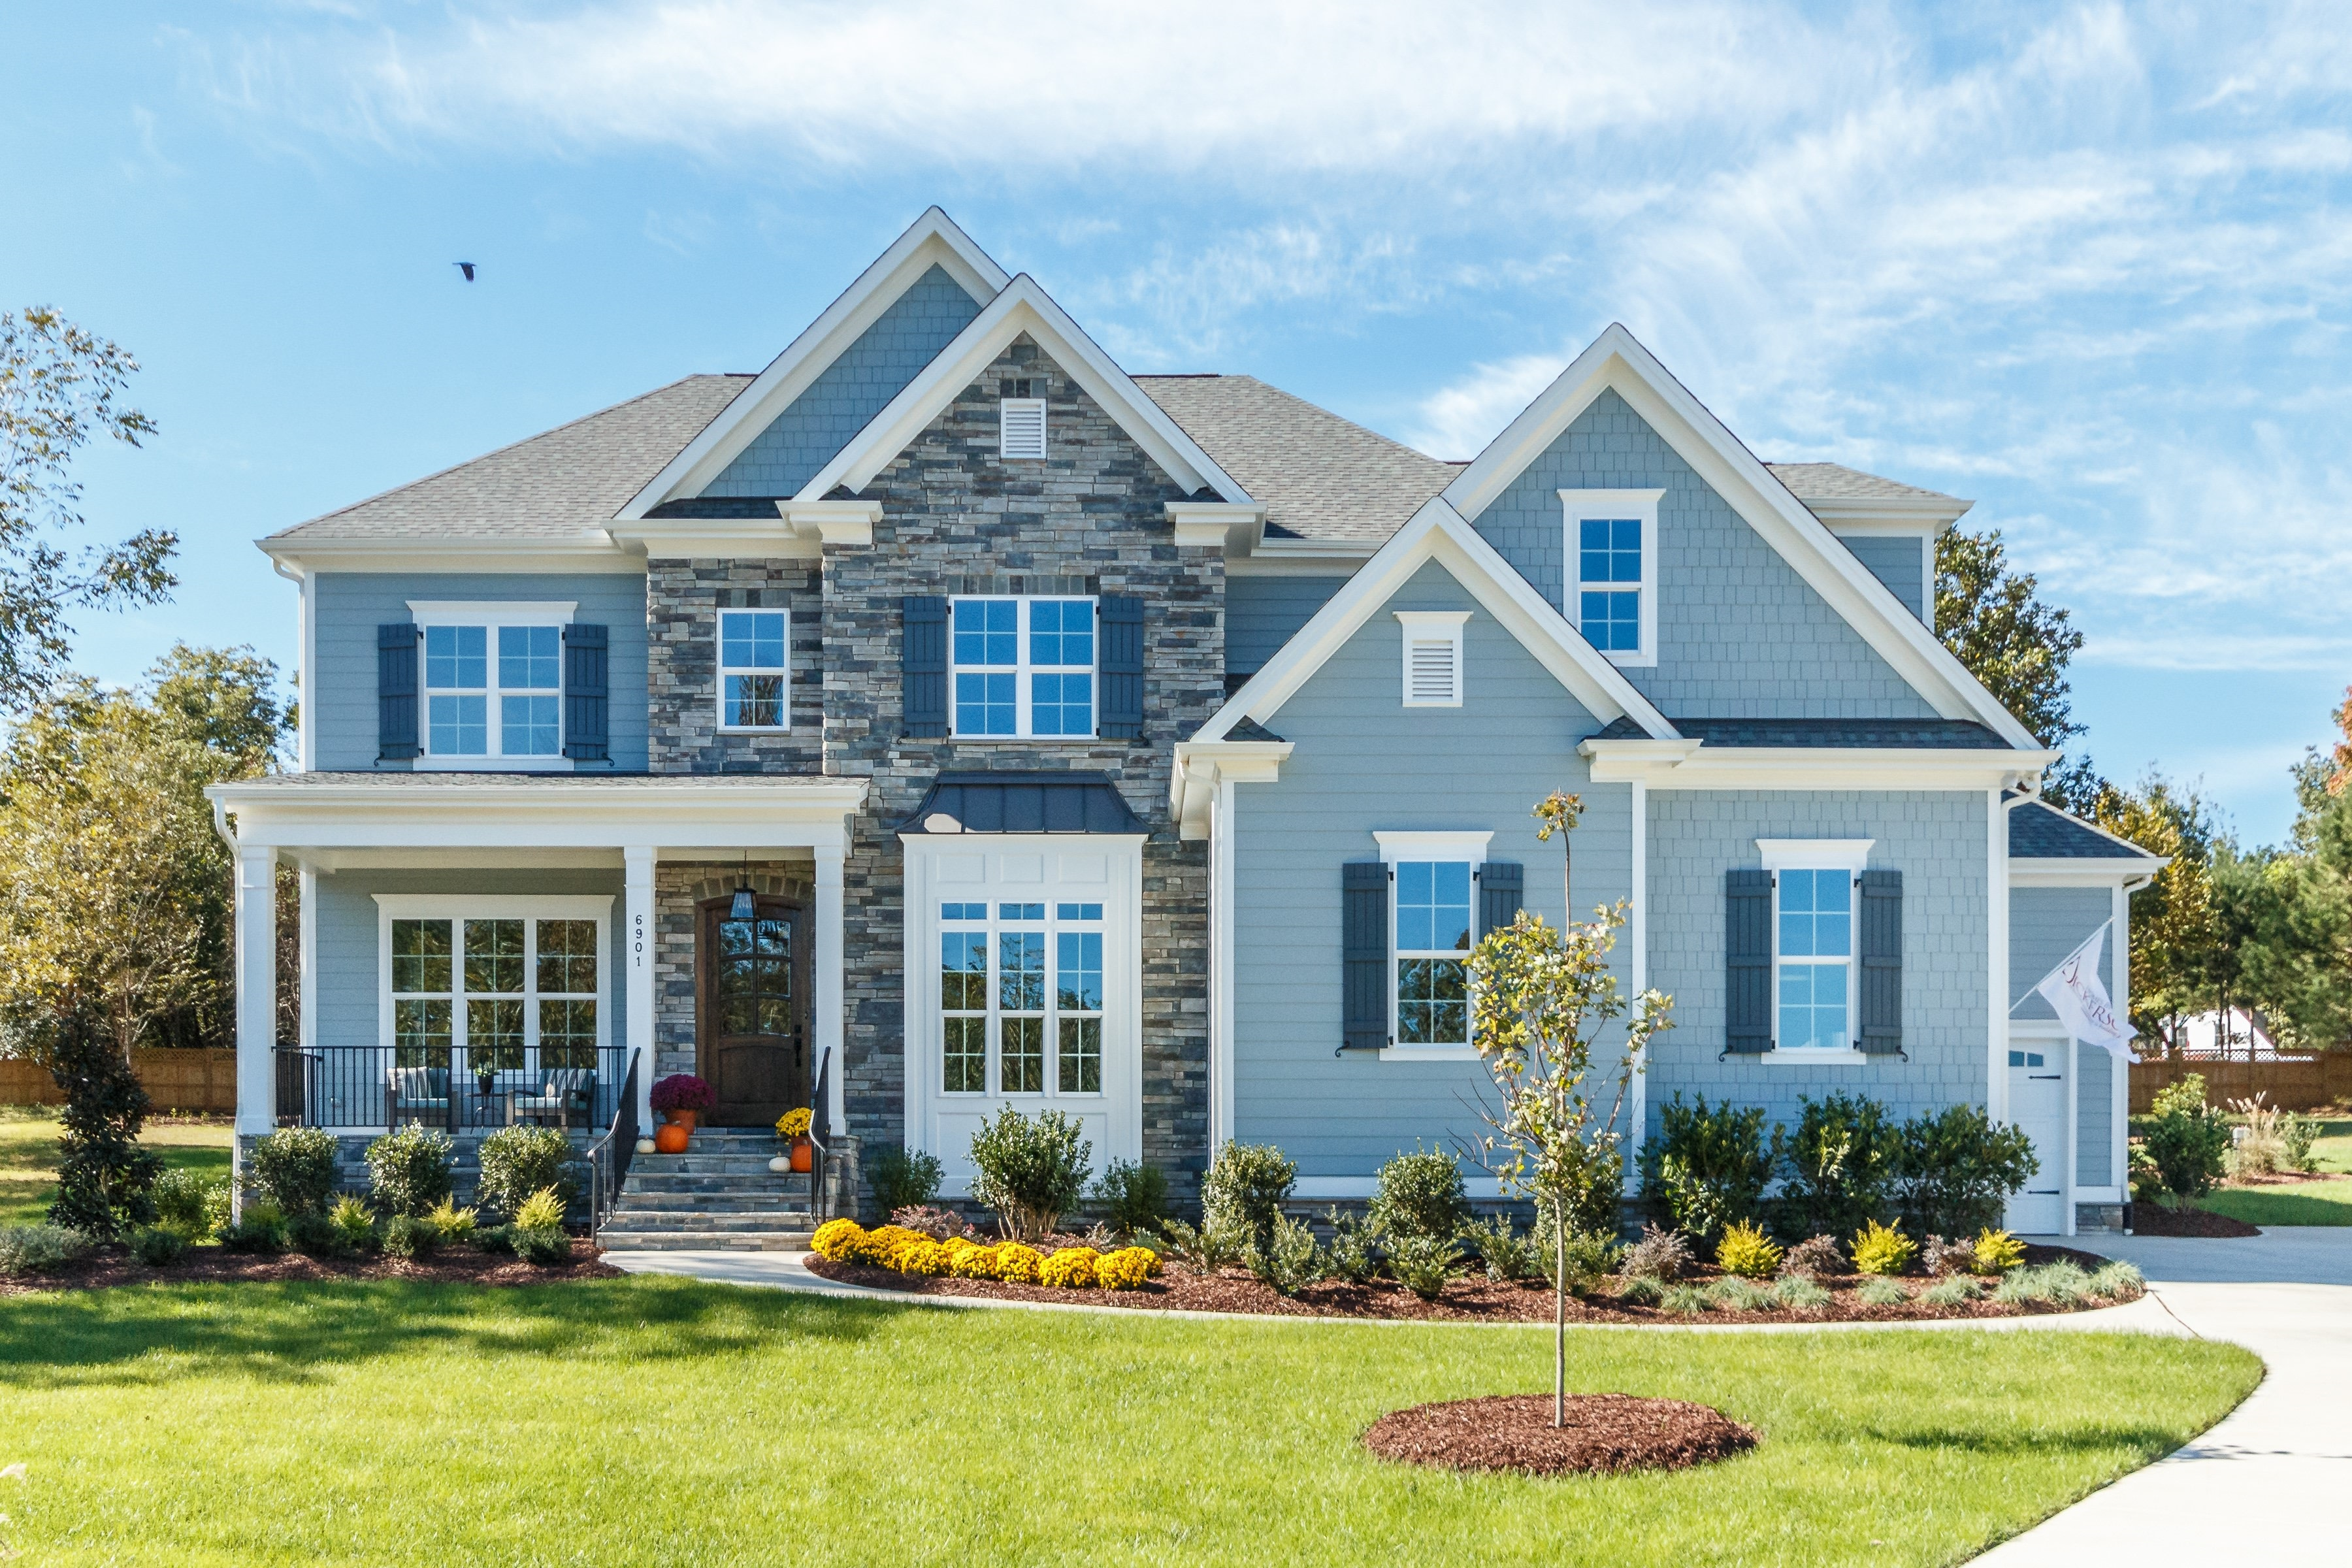 Raleigh Custom Builders | Homes by erson on shelby homes floor plans, regent homes floor plans, huff homes floor plans, warehouse homes floor plans, wausau homes floor plans, quadrant homes floor plans,